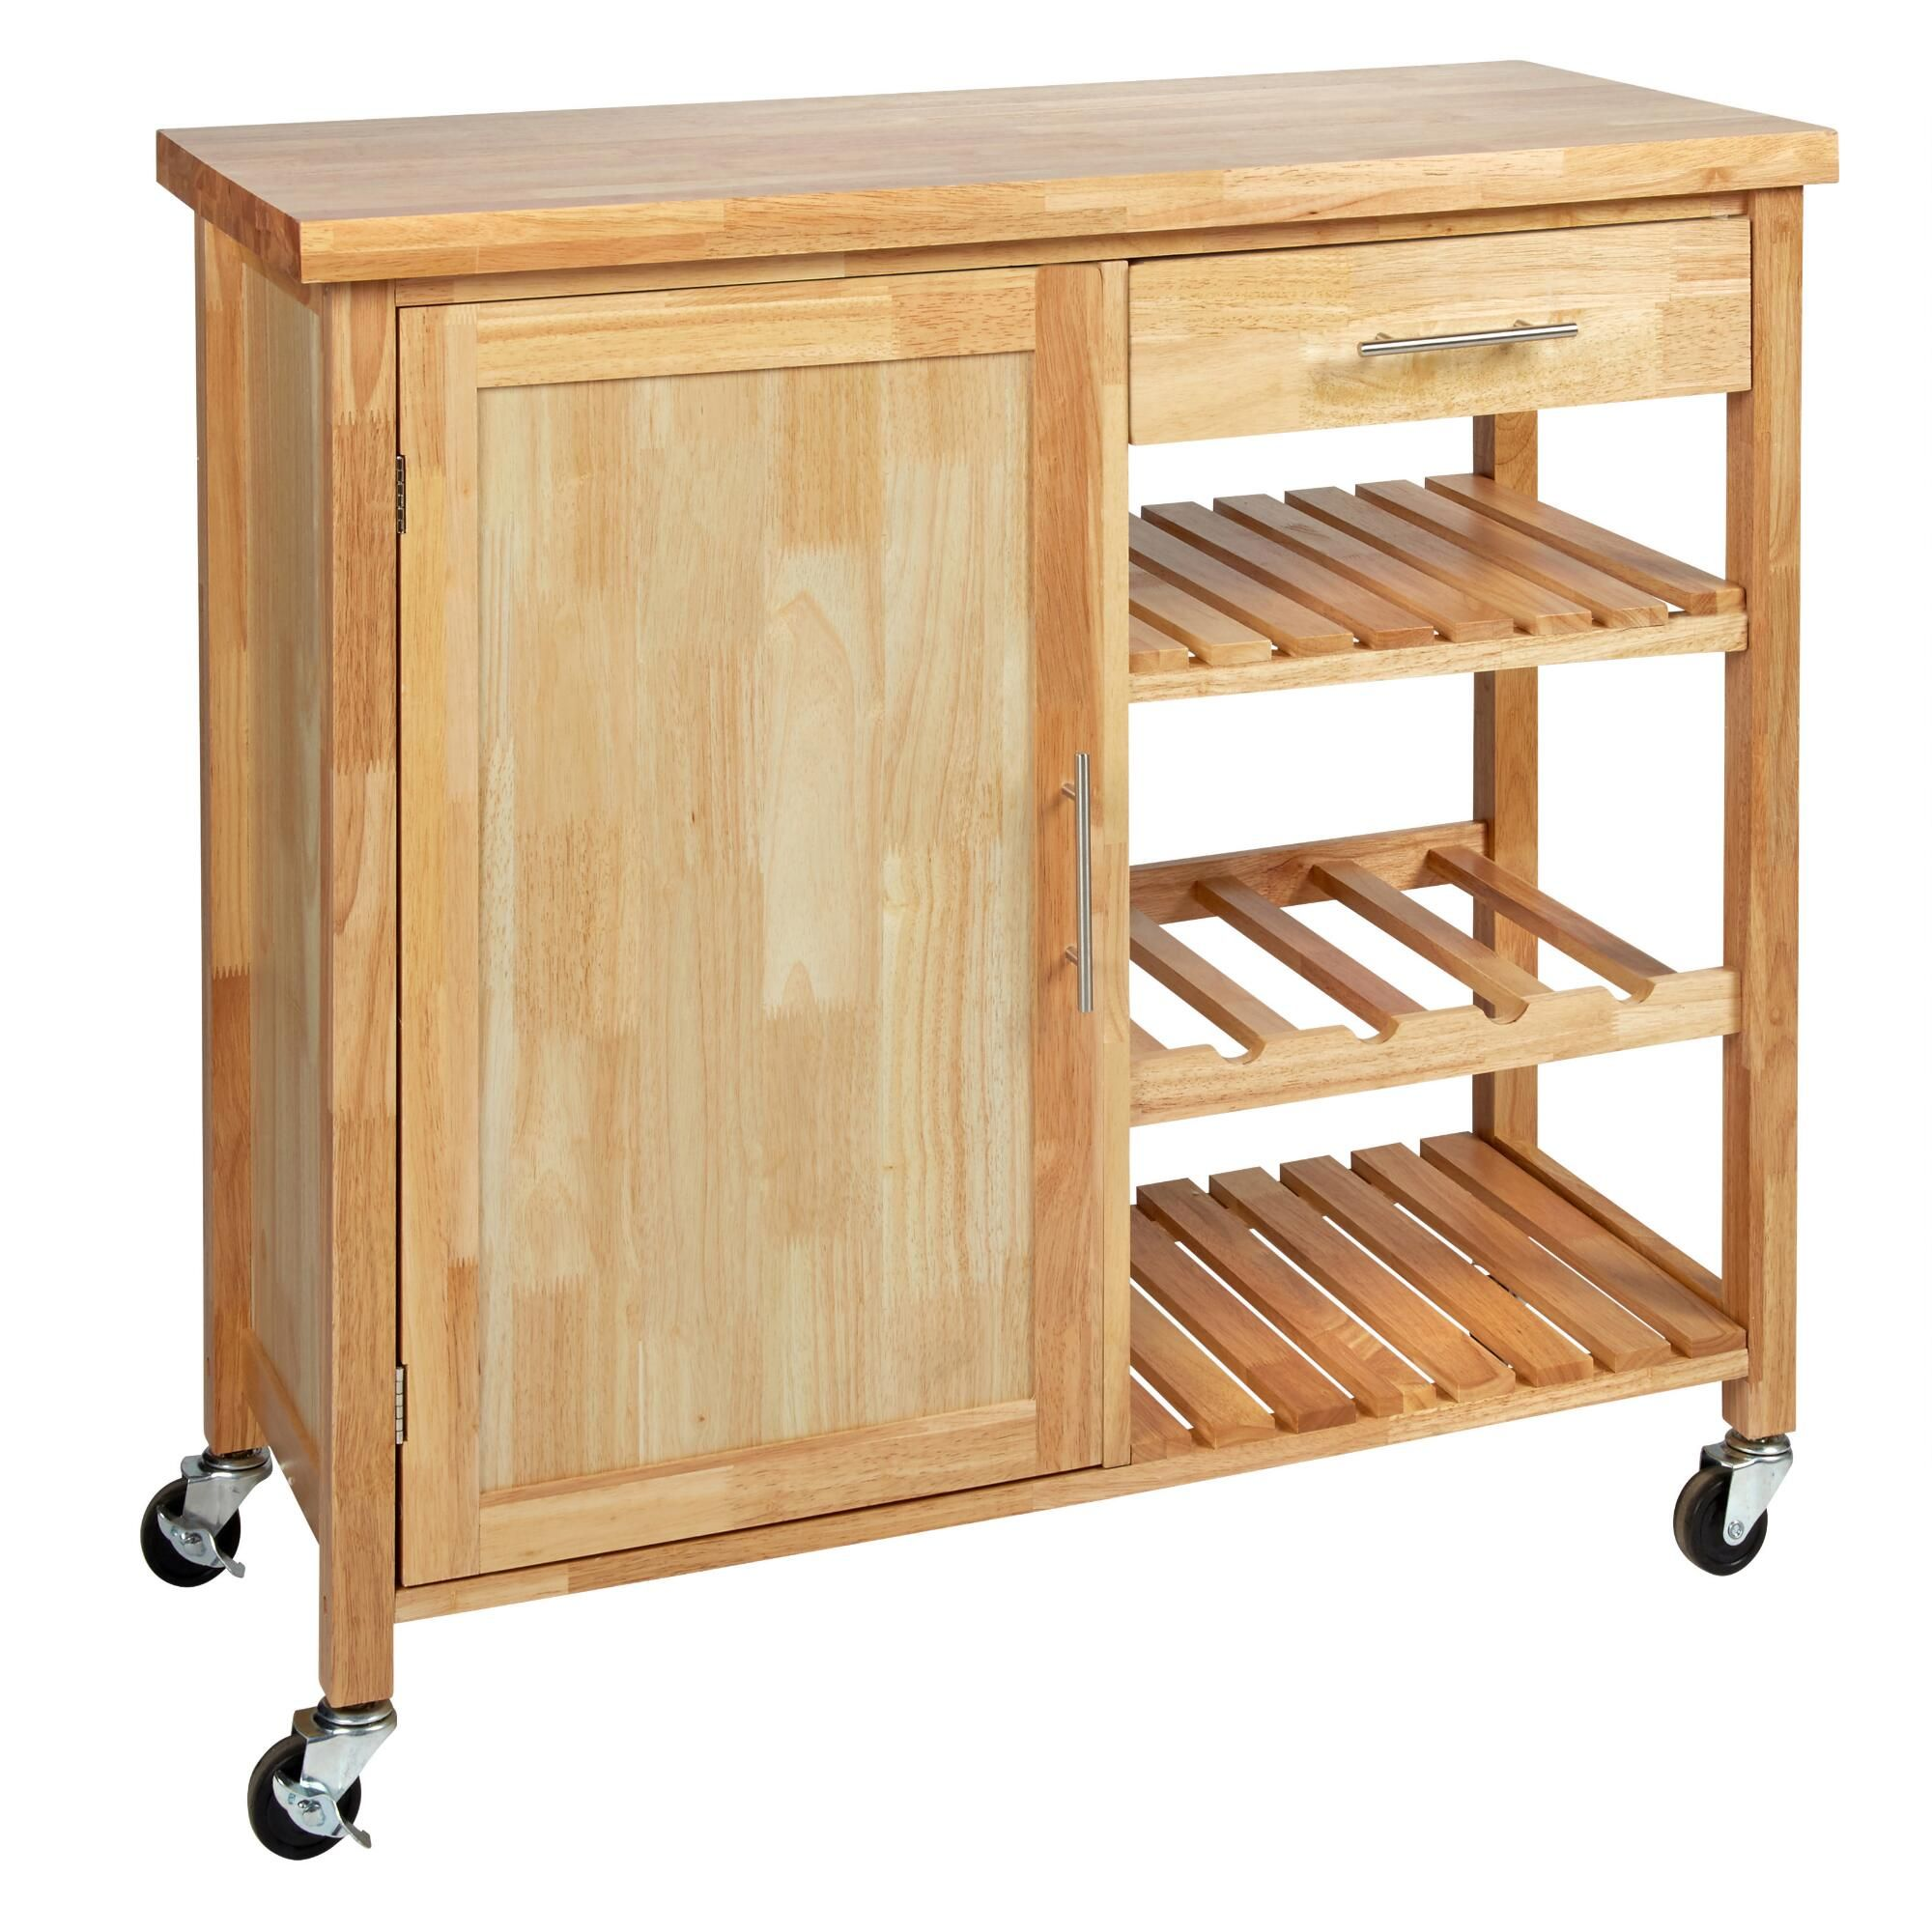 Kitchen island rolling  Youull be on a roll prepping and organizing your kitchen with our